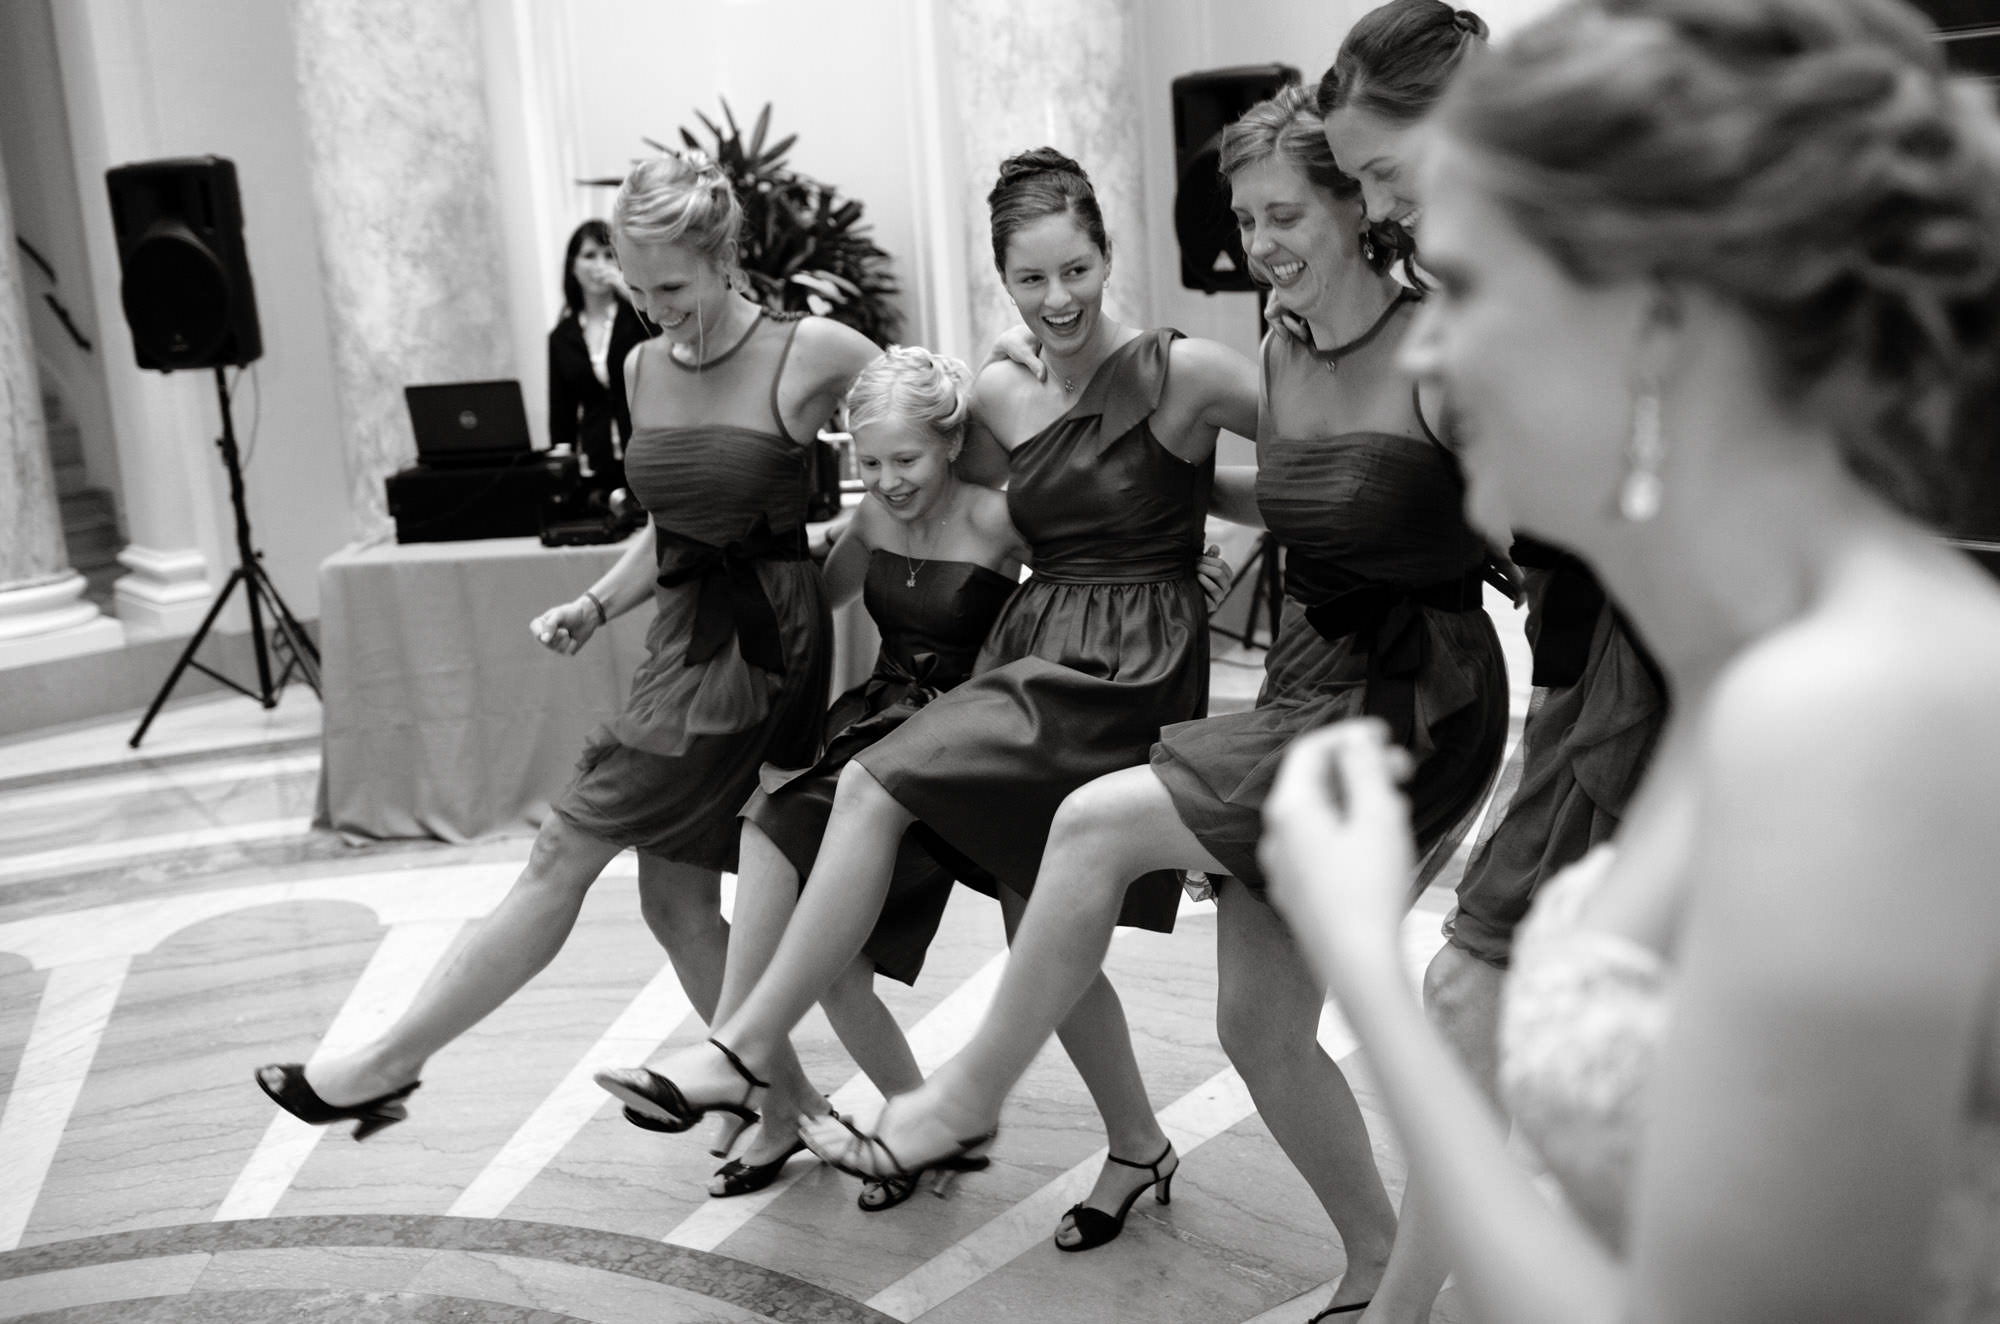 The wedding party dances during the Carnegie Institute for Science Wedding reception.